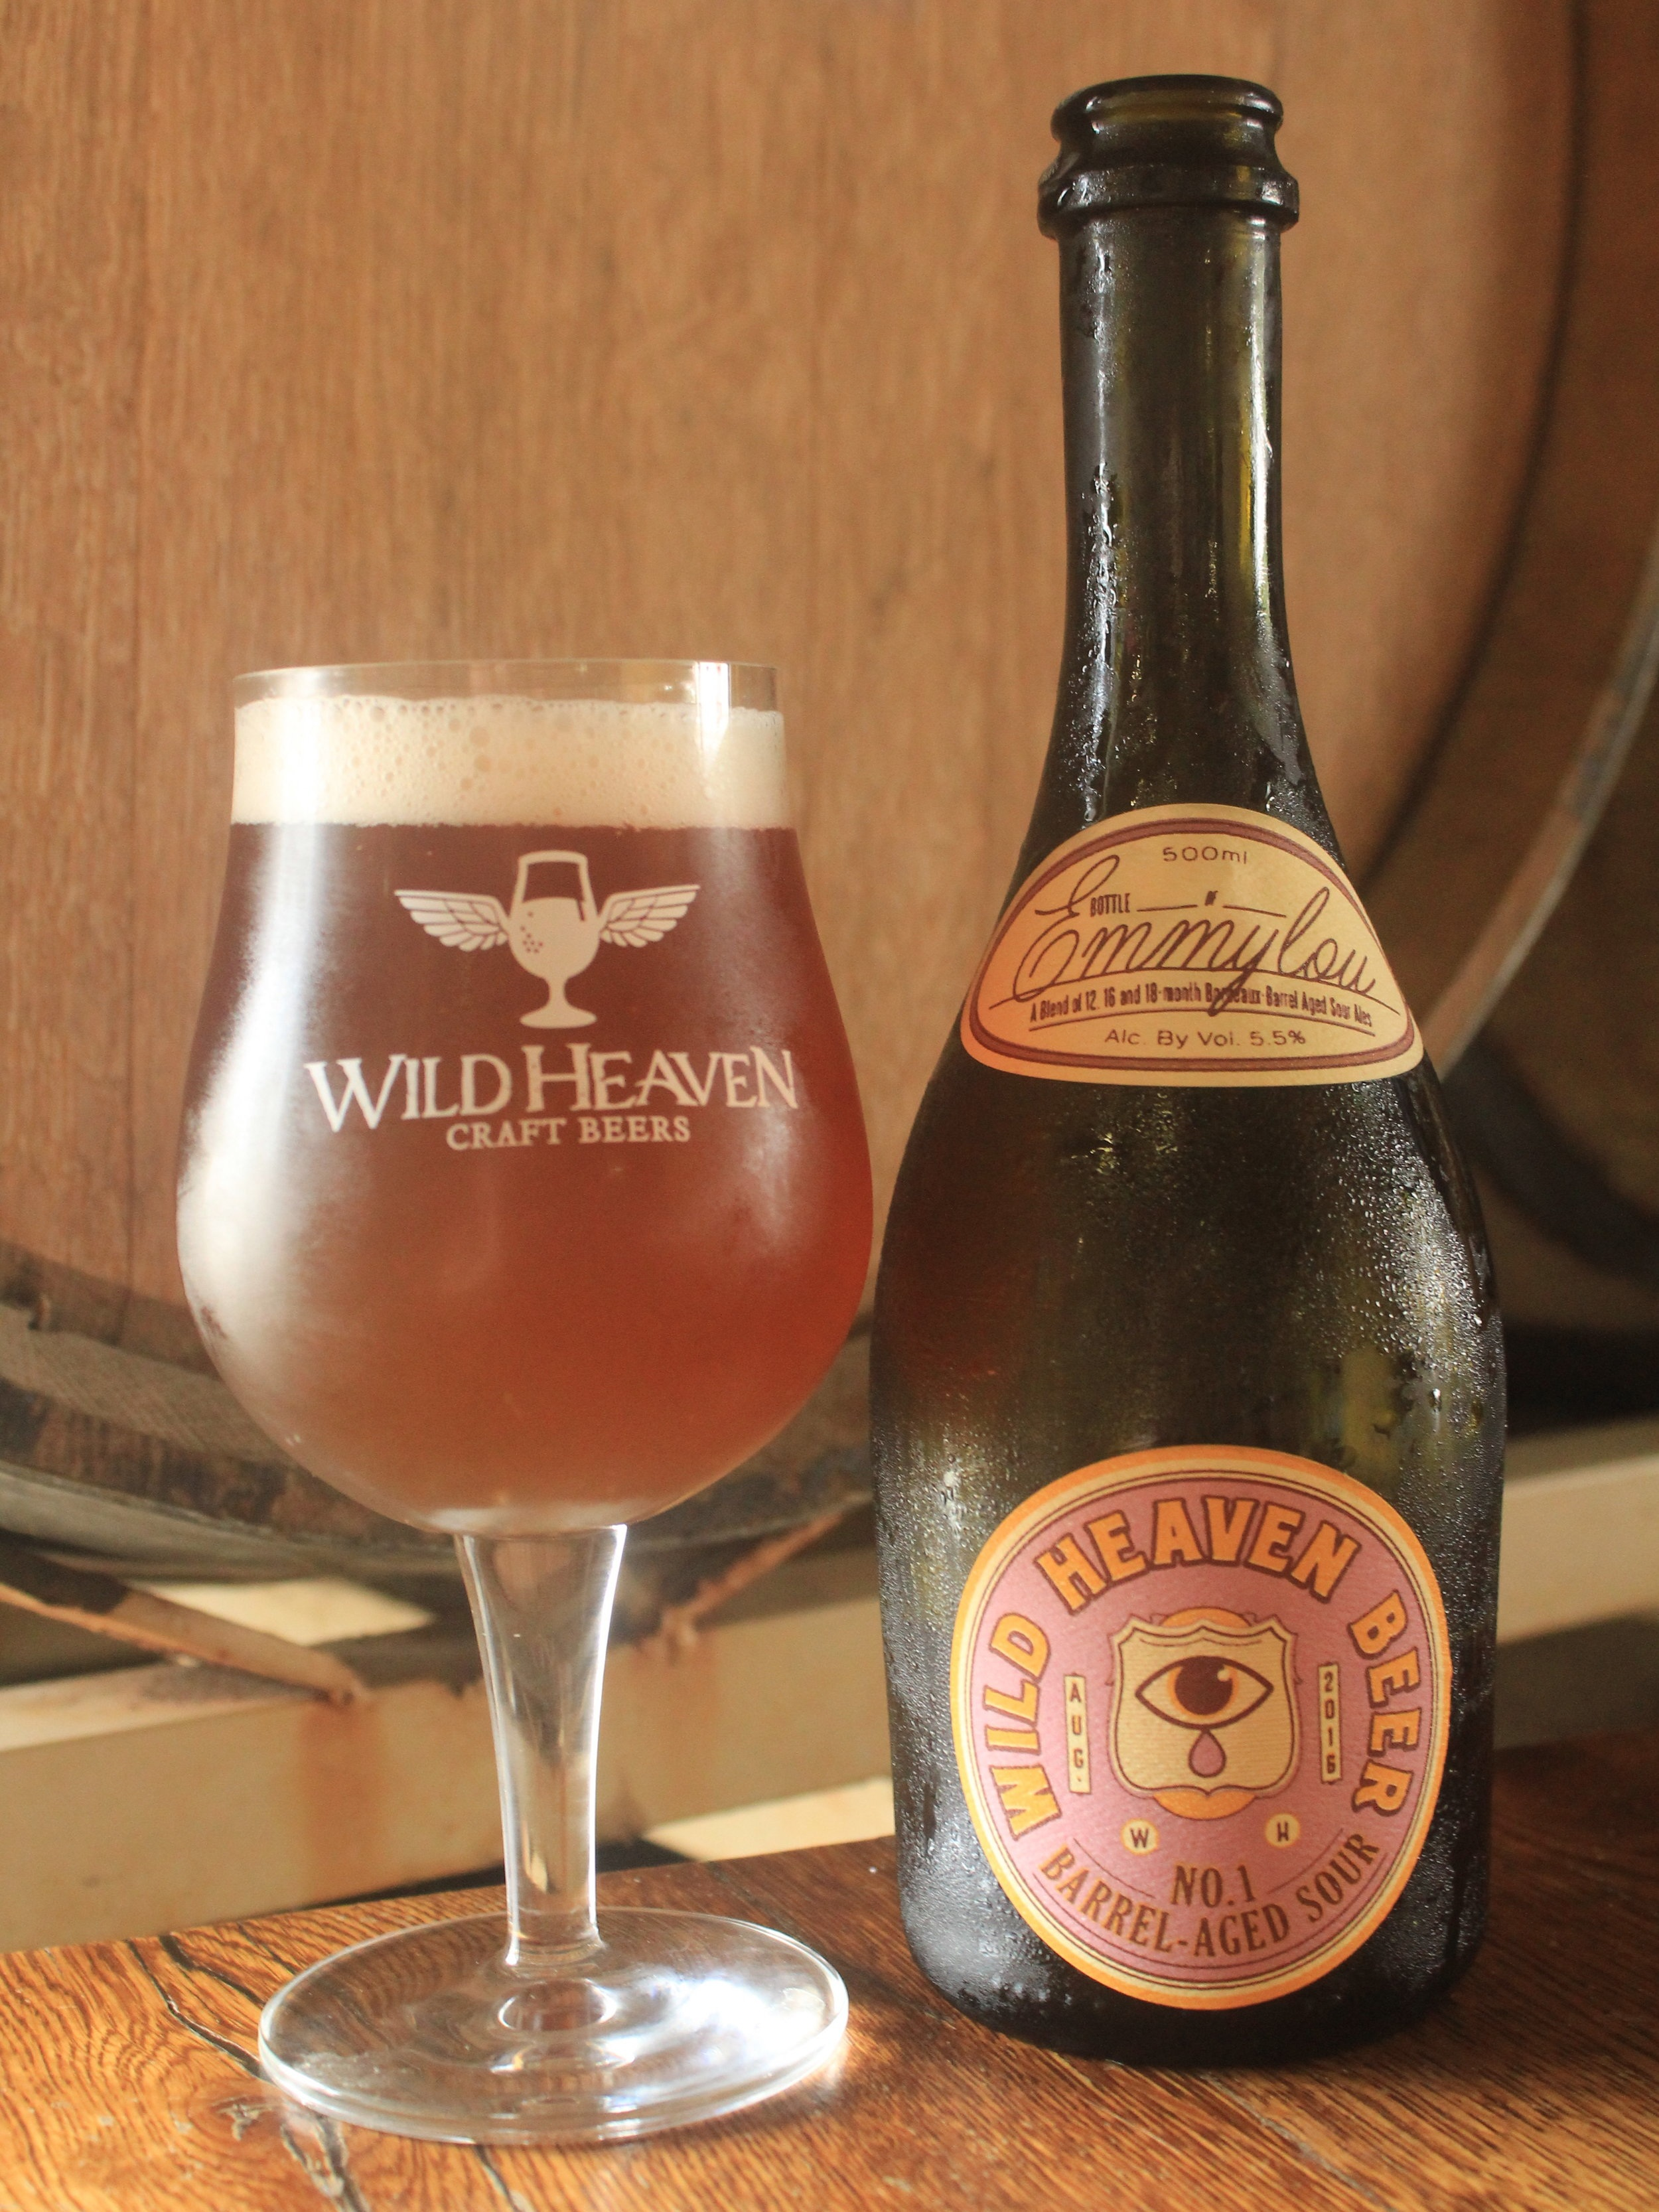 Emmylou - Barrel-aged Sour No. 15.5% ABVEmmylou is a blend of eighteen, sixteen and twelve-month old Bordeaux barrel-aged golden ale fermented with brettanomyces and lactobacillus and refermented with cantaloupe, golden gooseberry, D'Anjou pears, Asian persimmon and kumquat.